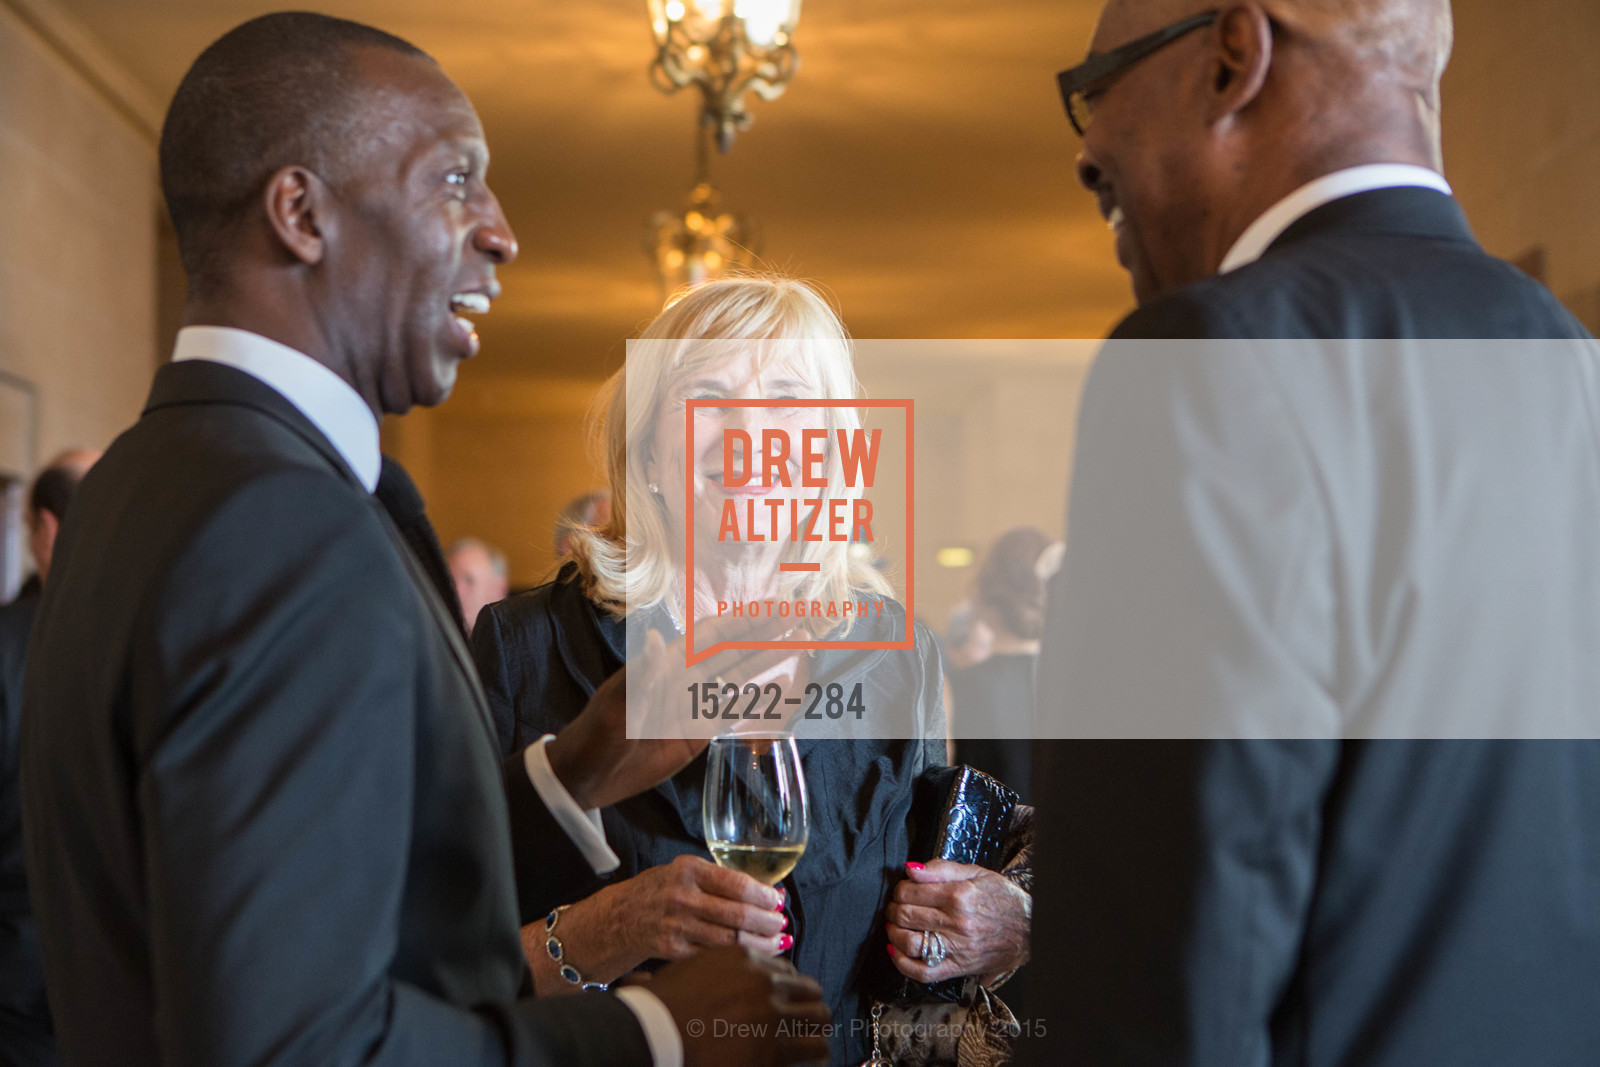 Extras, Opera Ball 2015: Moonlight & Music, September 11th, 2015, Photo,Drew Altizer, Drew Altizer Photography, full-service agency, private events, San Francisco photographer, photographer california